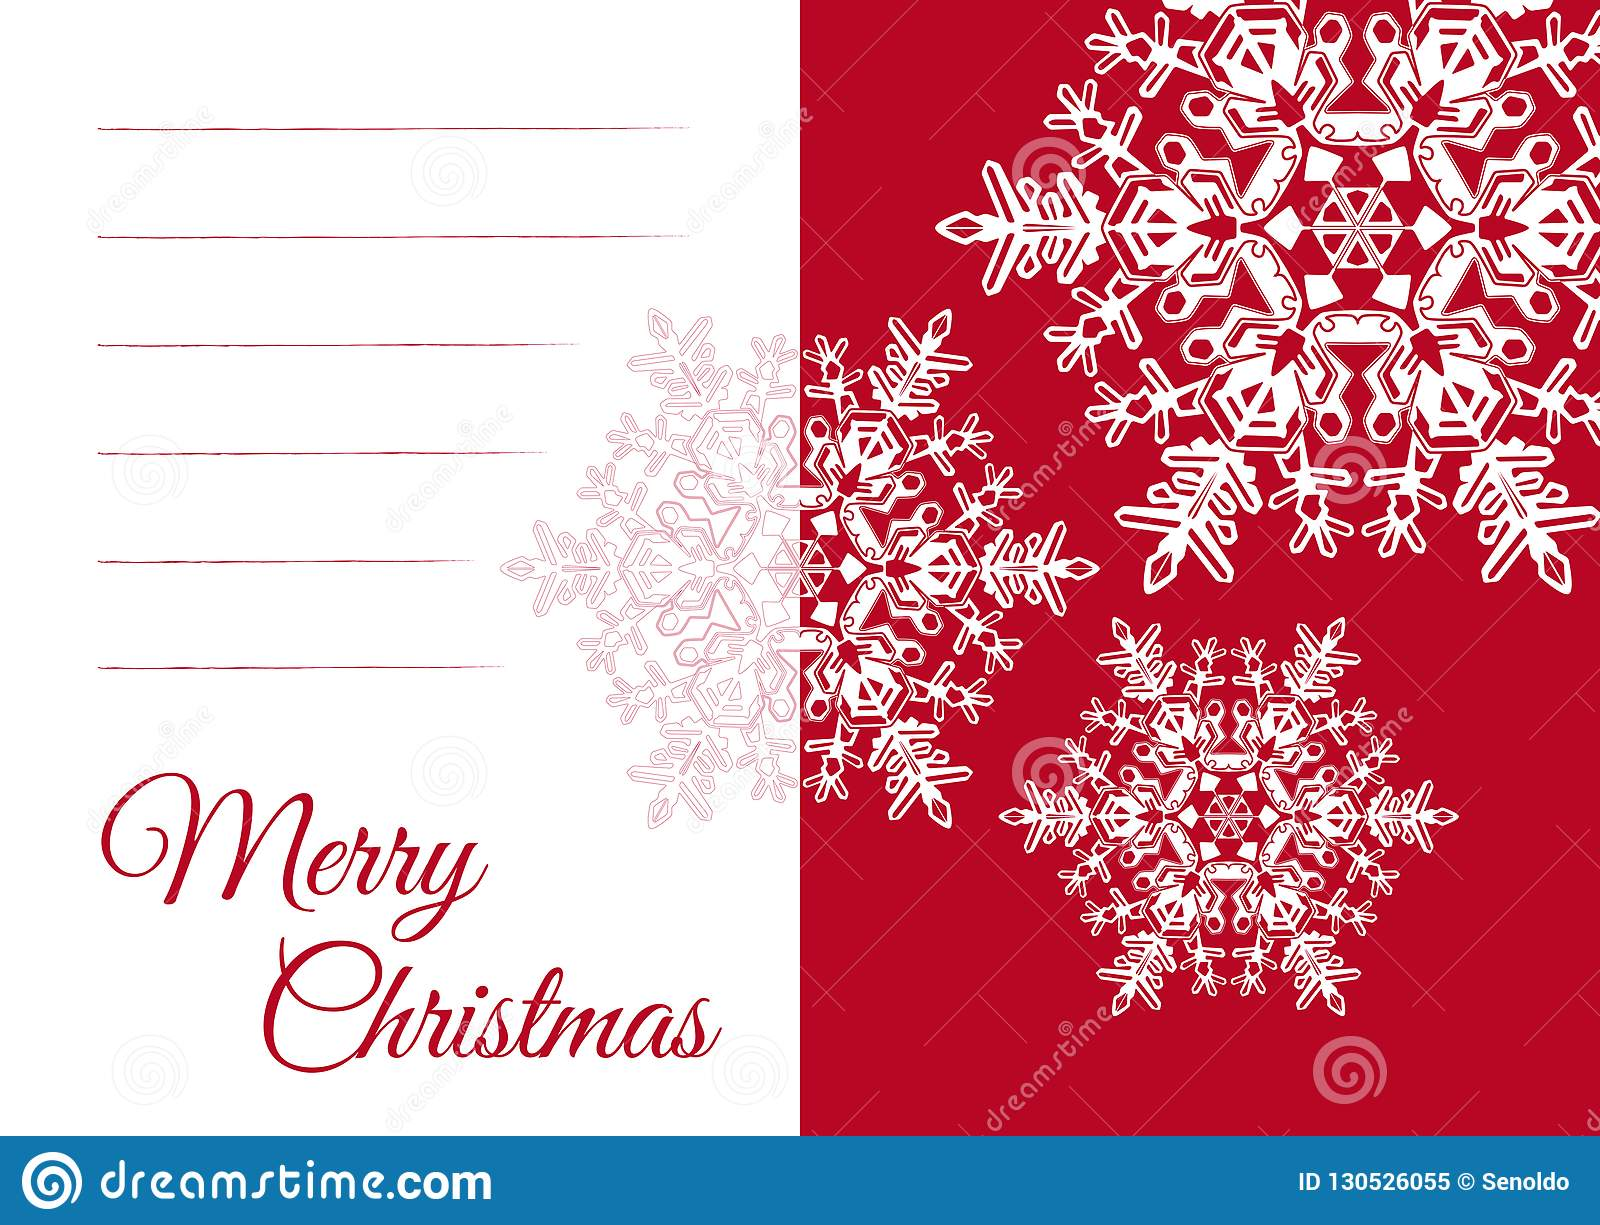 christmas greeting card template with blank text field